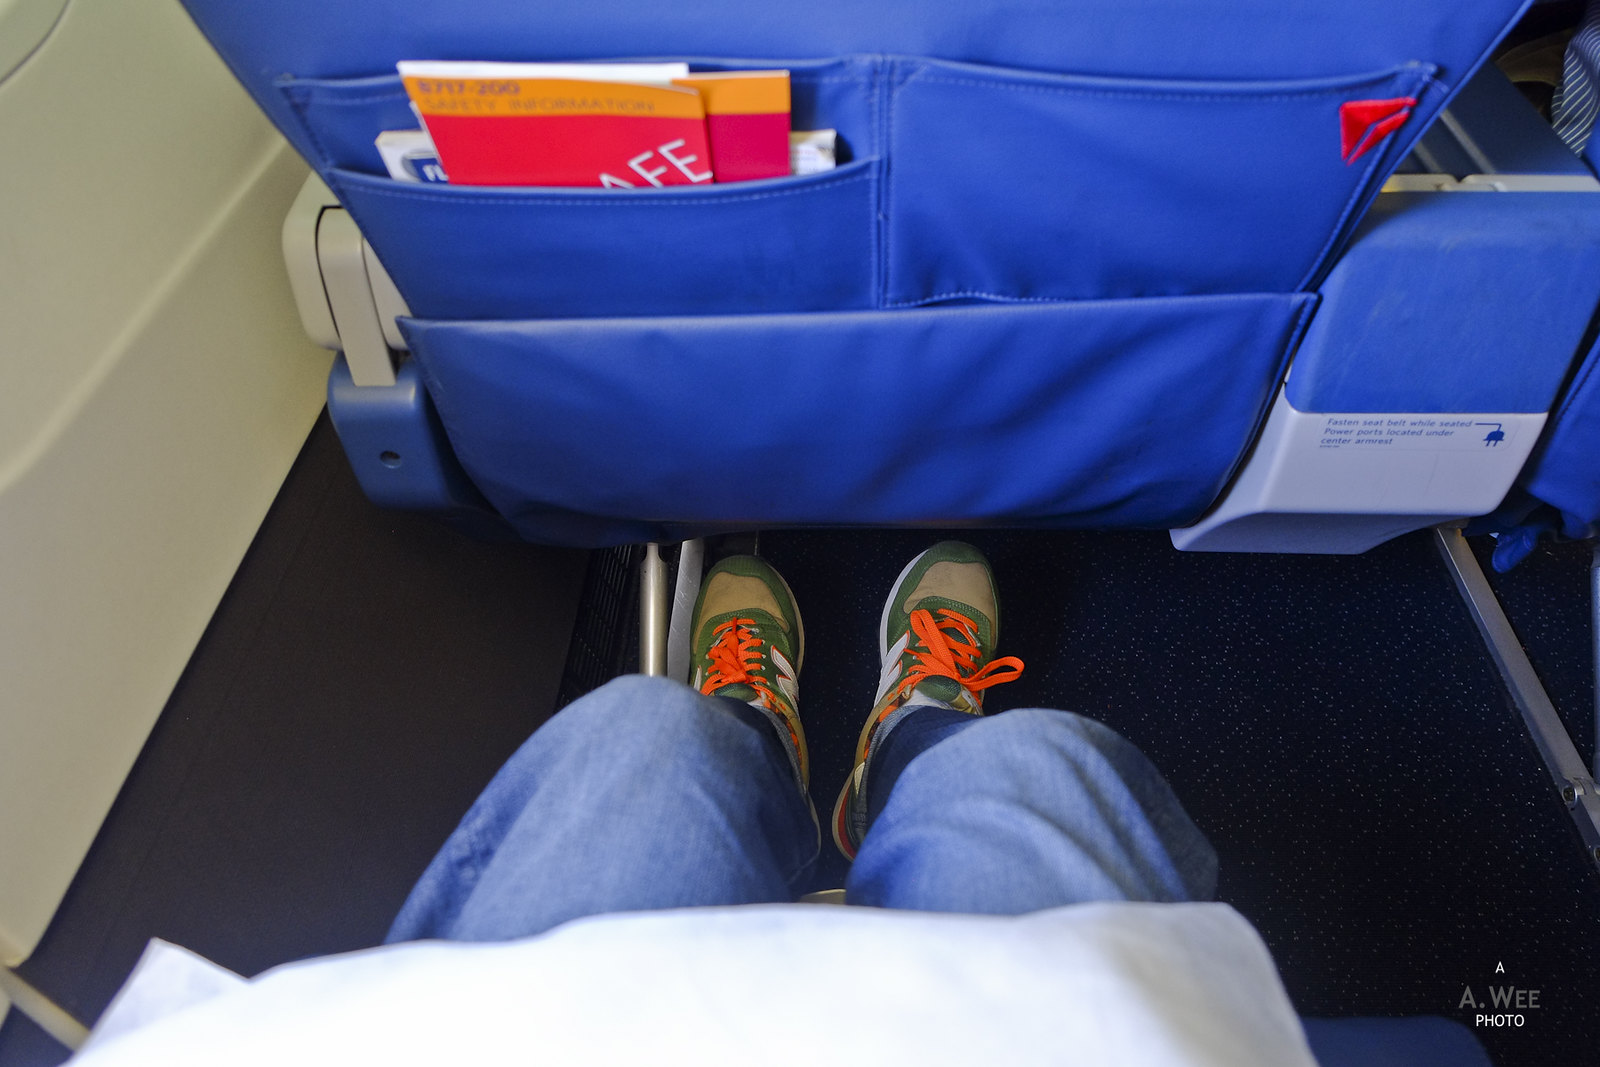 Legroom on the flight